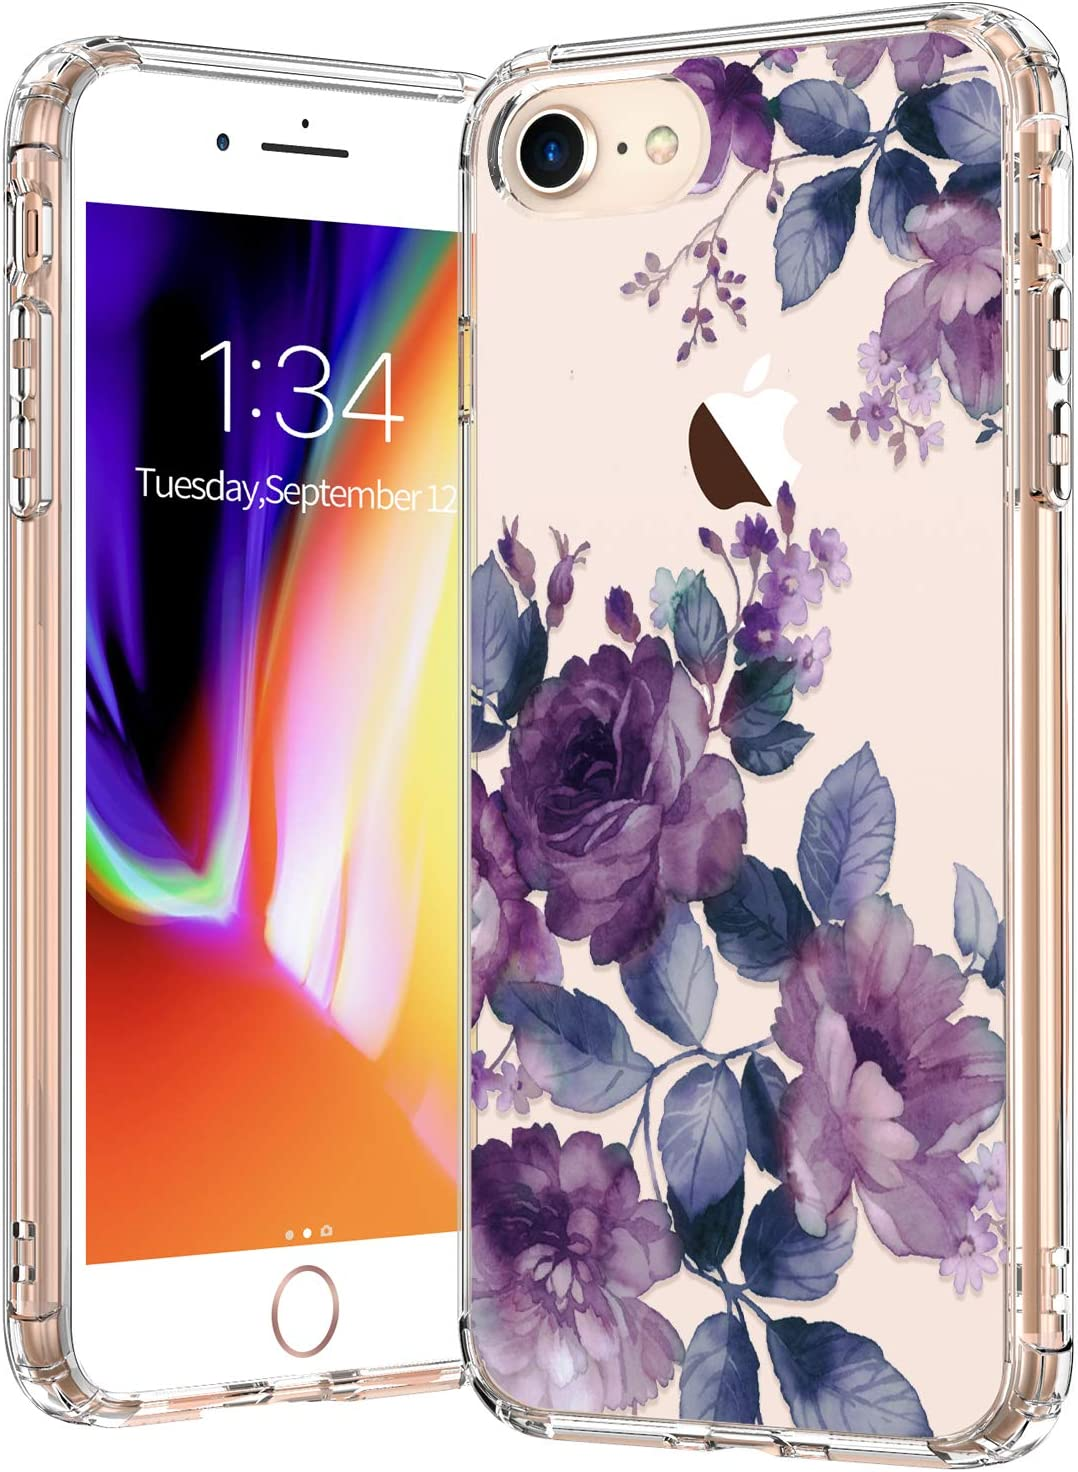 BICOL iPhone SE2 Case 2020,iPhone 7 Case,iPhone 8 Case,Elegant Purple Floral Flower Pattern Clear with Design Protective Phone Case Cover for Apple iPhone 7/iPhone 8/iPhone SE2